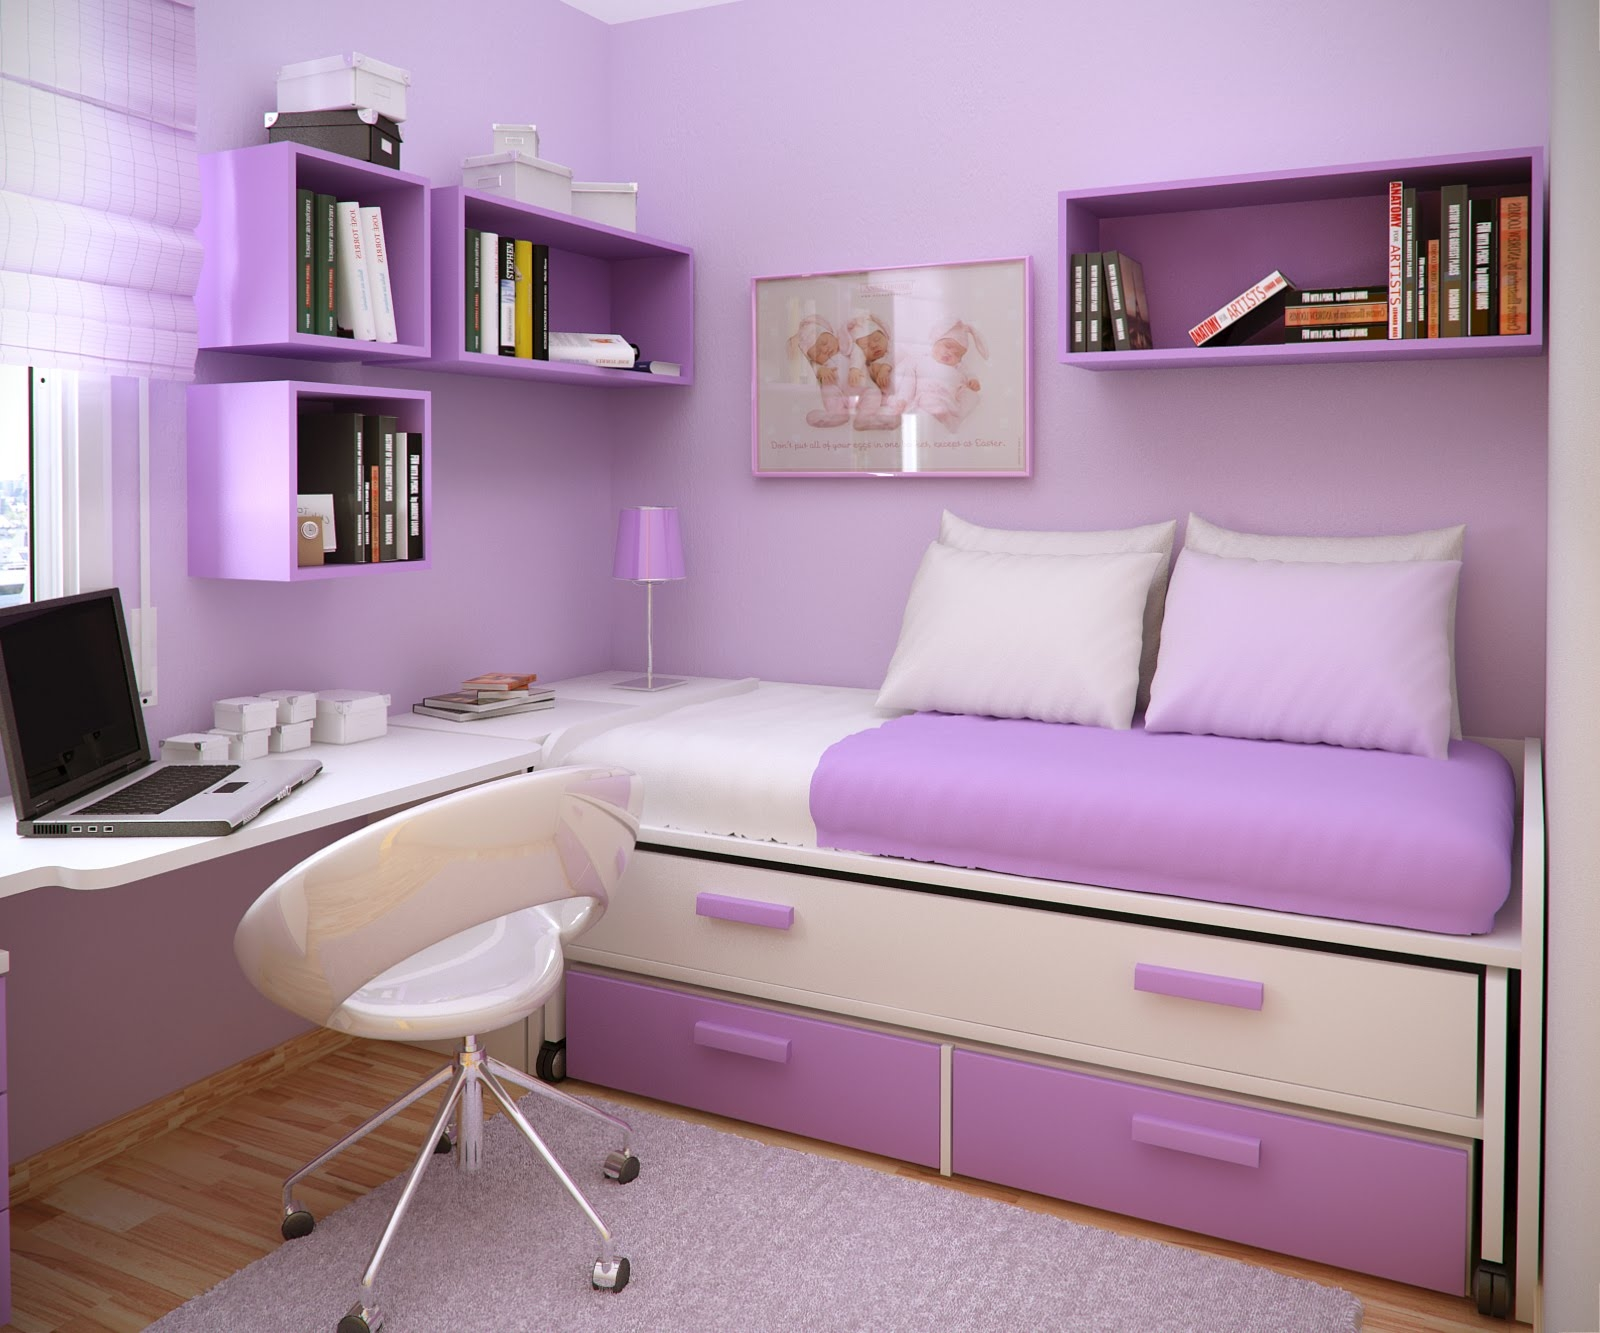 bedroom-interior-romantic-purple-wall-paint-best-wall-color-for-bedroom-design-ideas-with-stunning-white-purple-day-bed-and-beautiful-open-book-shelves-also-cool-white-study-table-plus-cozy-white-whe-